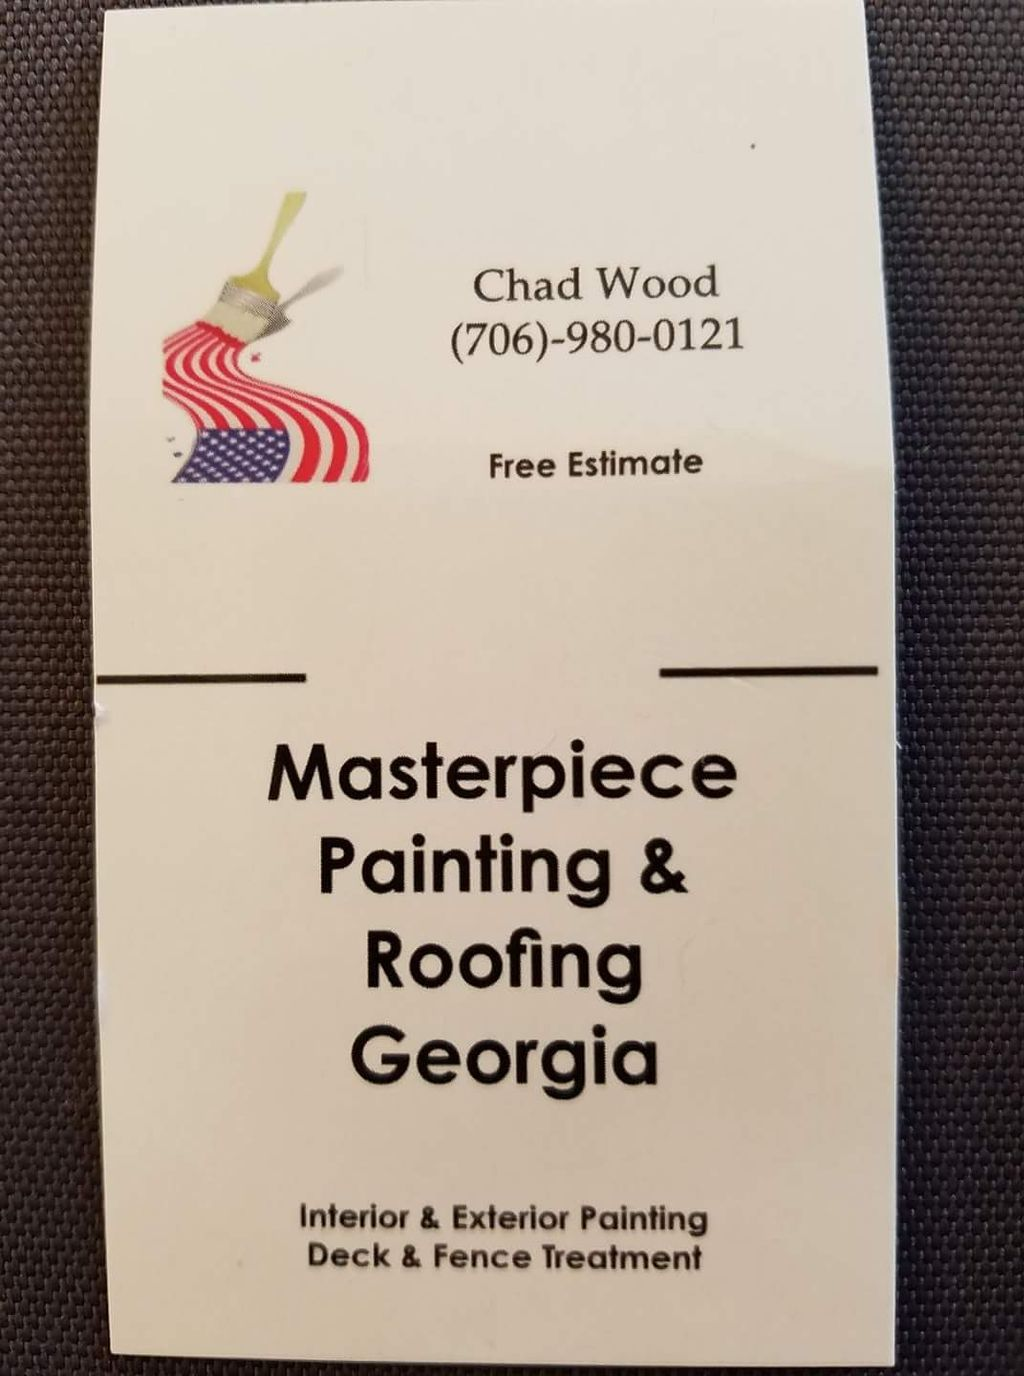 Masterpiece Painting & Roofing Georgia